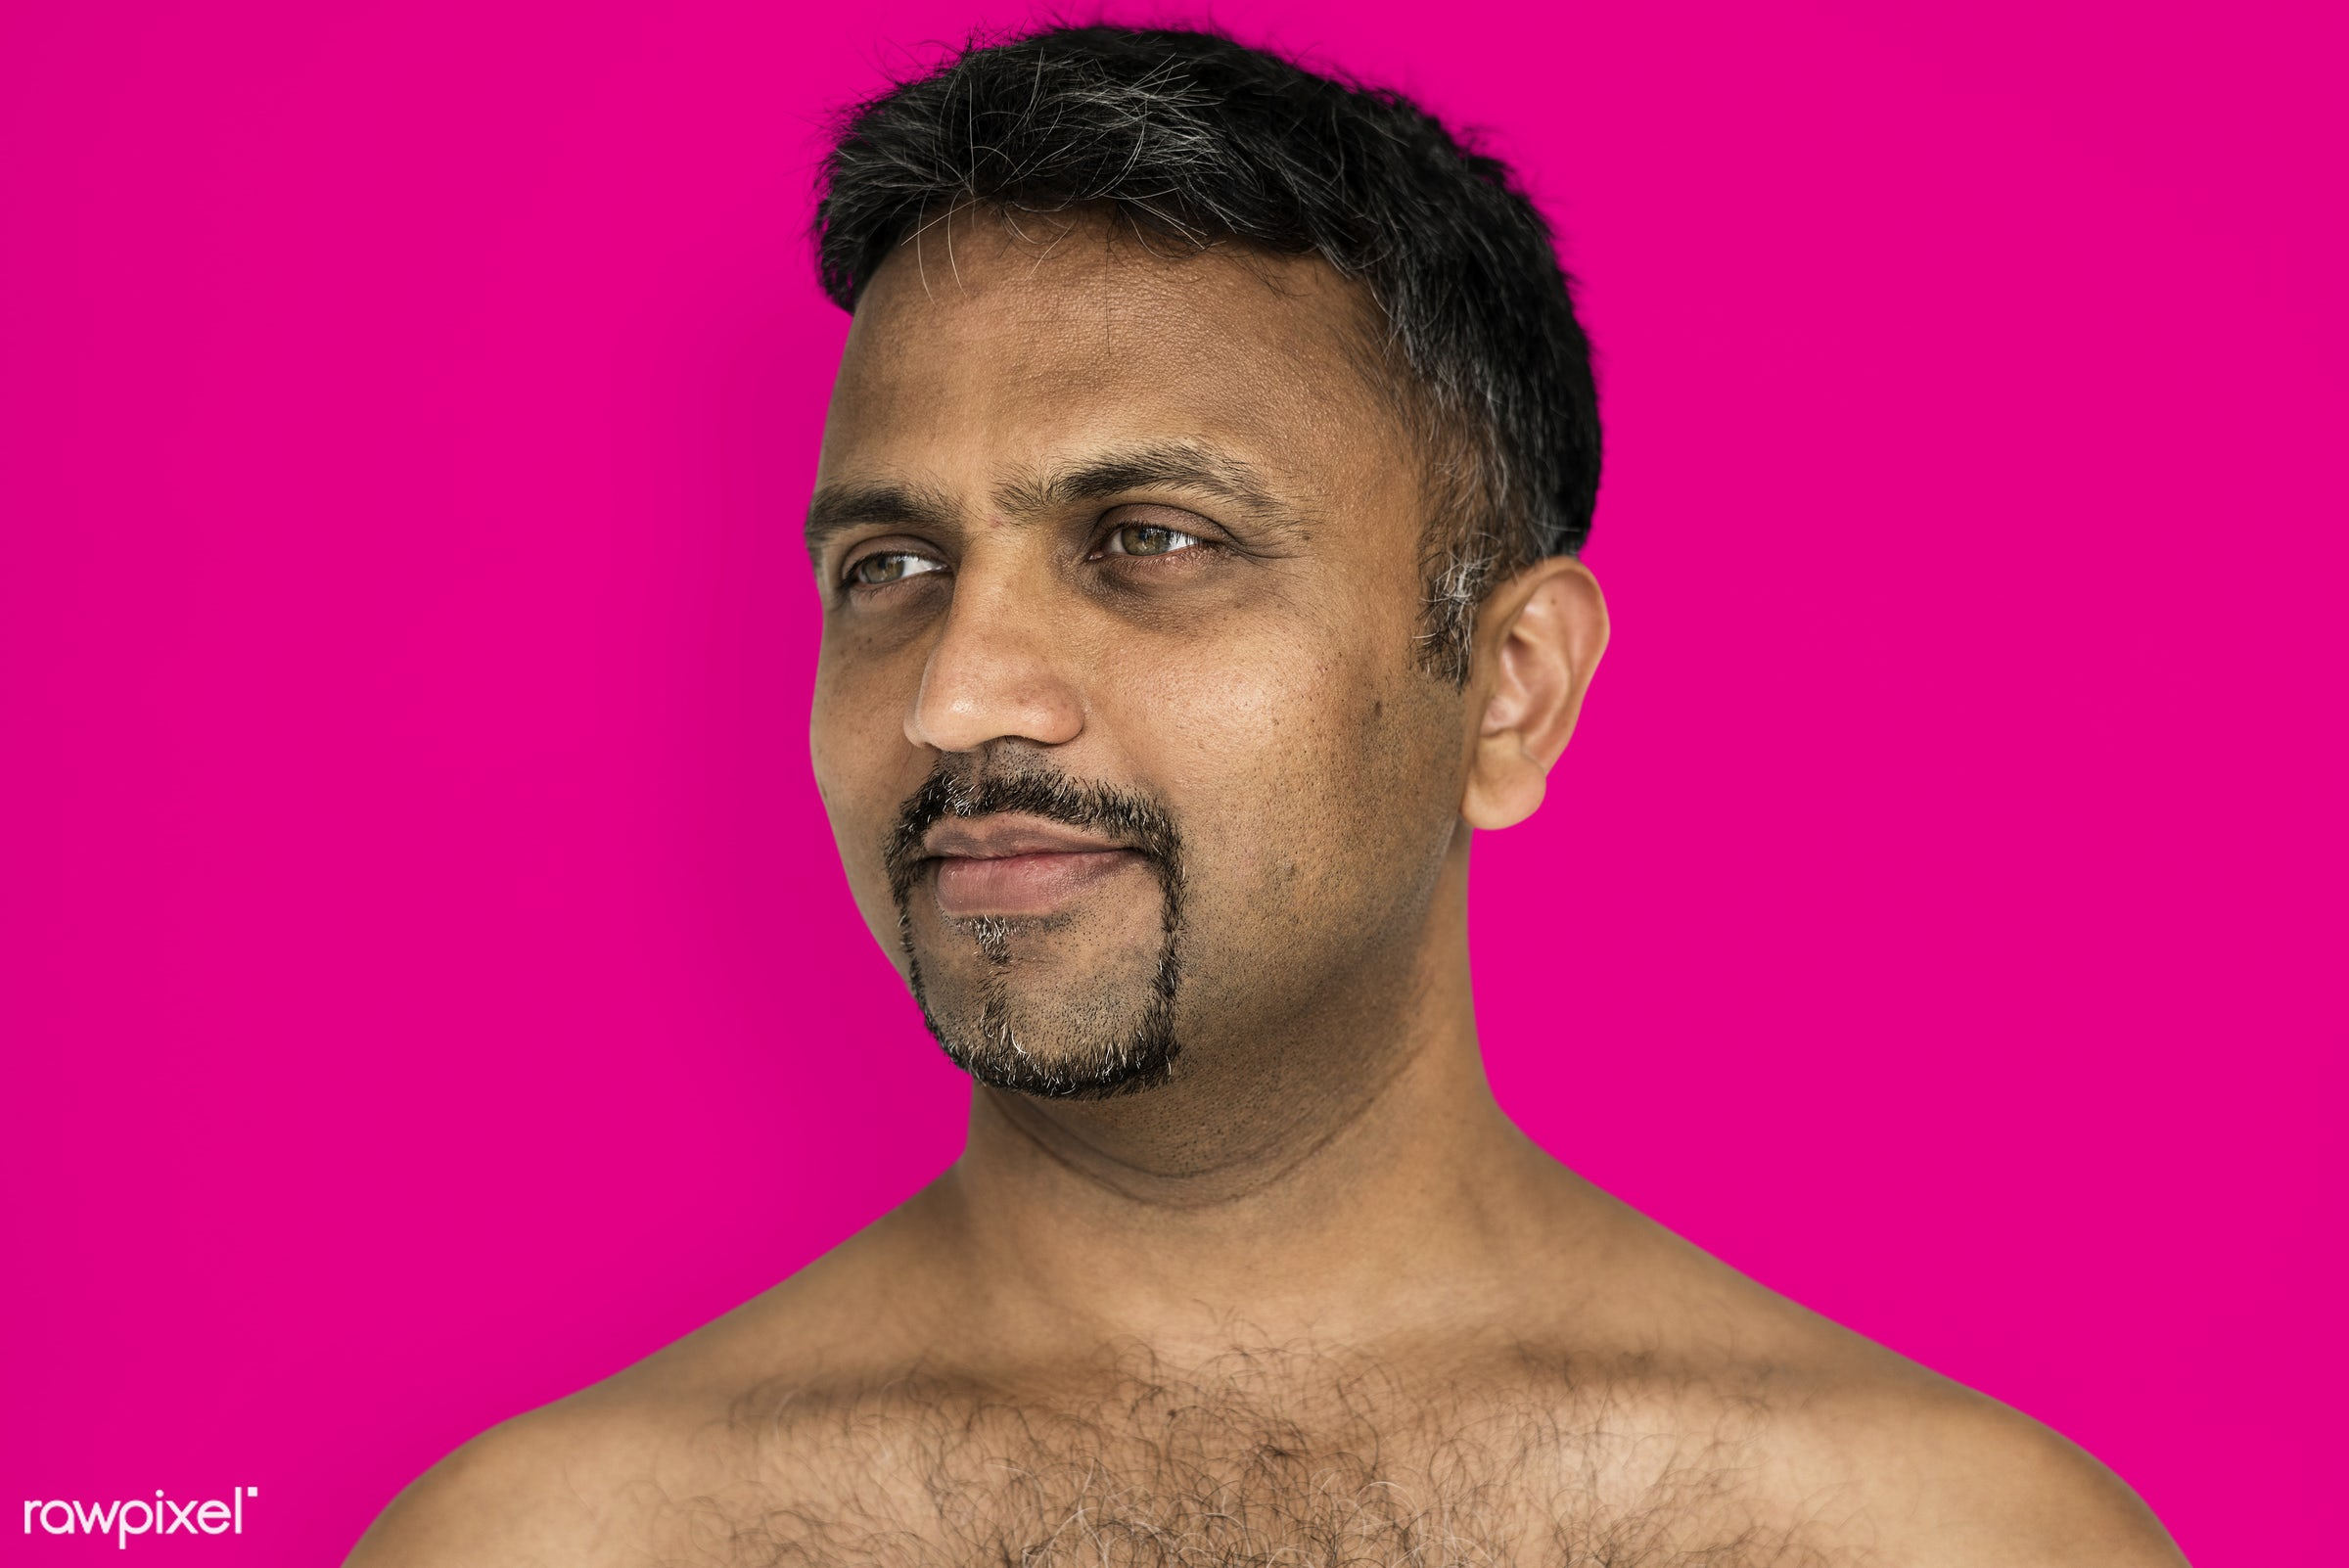 studio, face, person, joy, indian ethnicity, people, looking, bare chest, solo, happy, pink, smile, cheerful, man, smiling,...